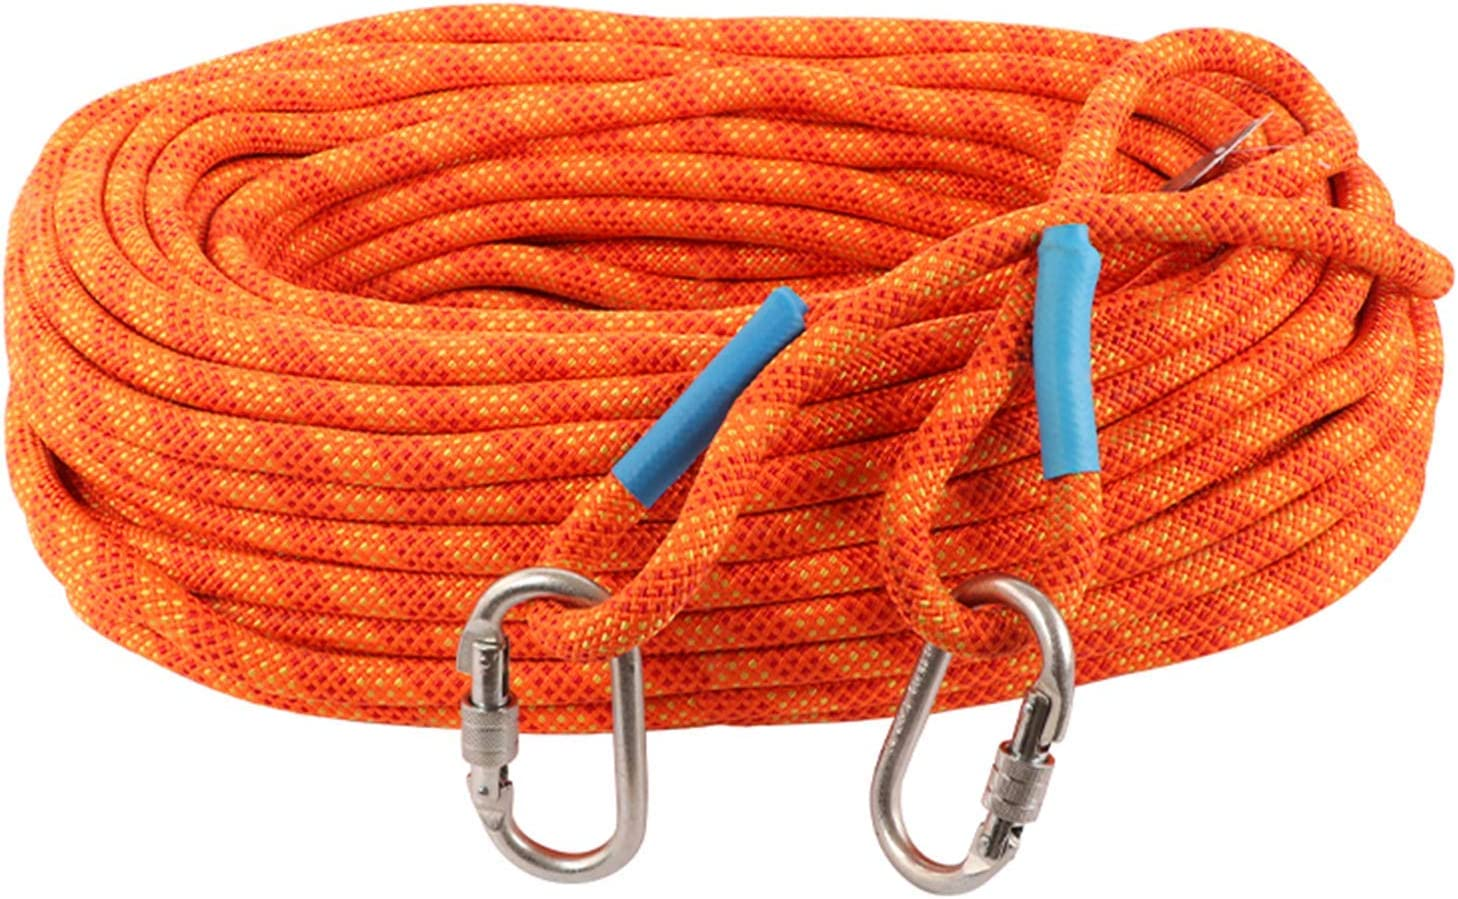 DLYDSSZZ Now Max 71% OFF free shipping 16mm High-Altitude Working Rope Wire Anti-Falling Exter